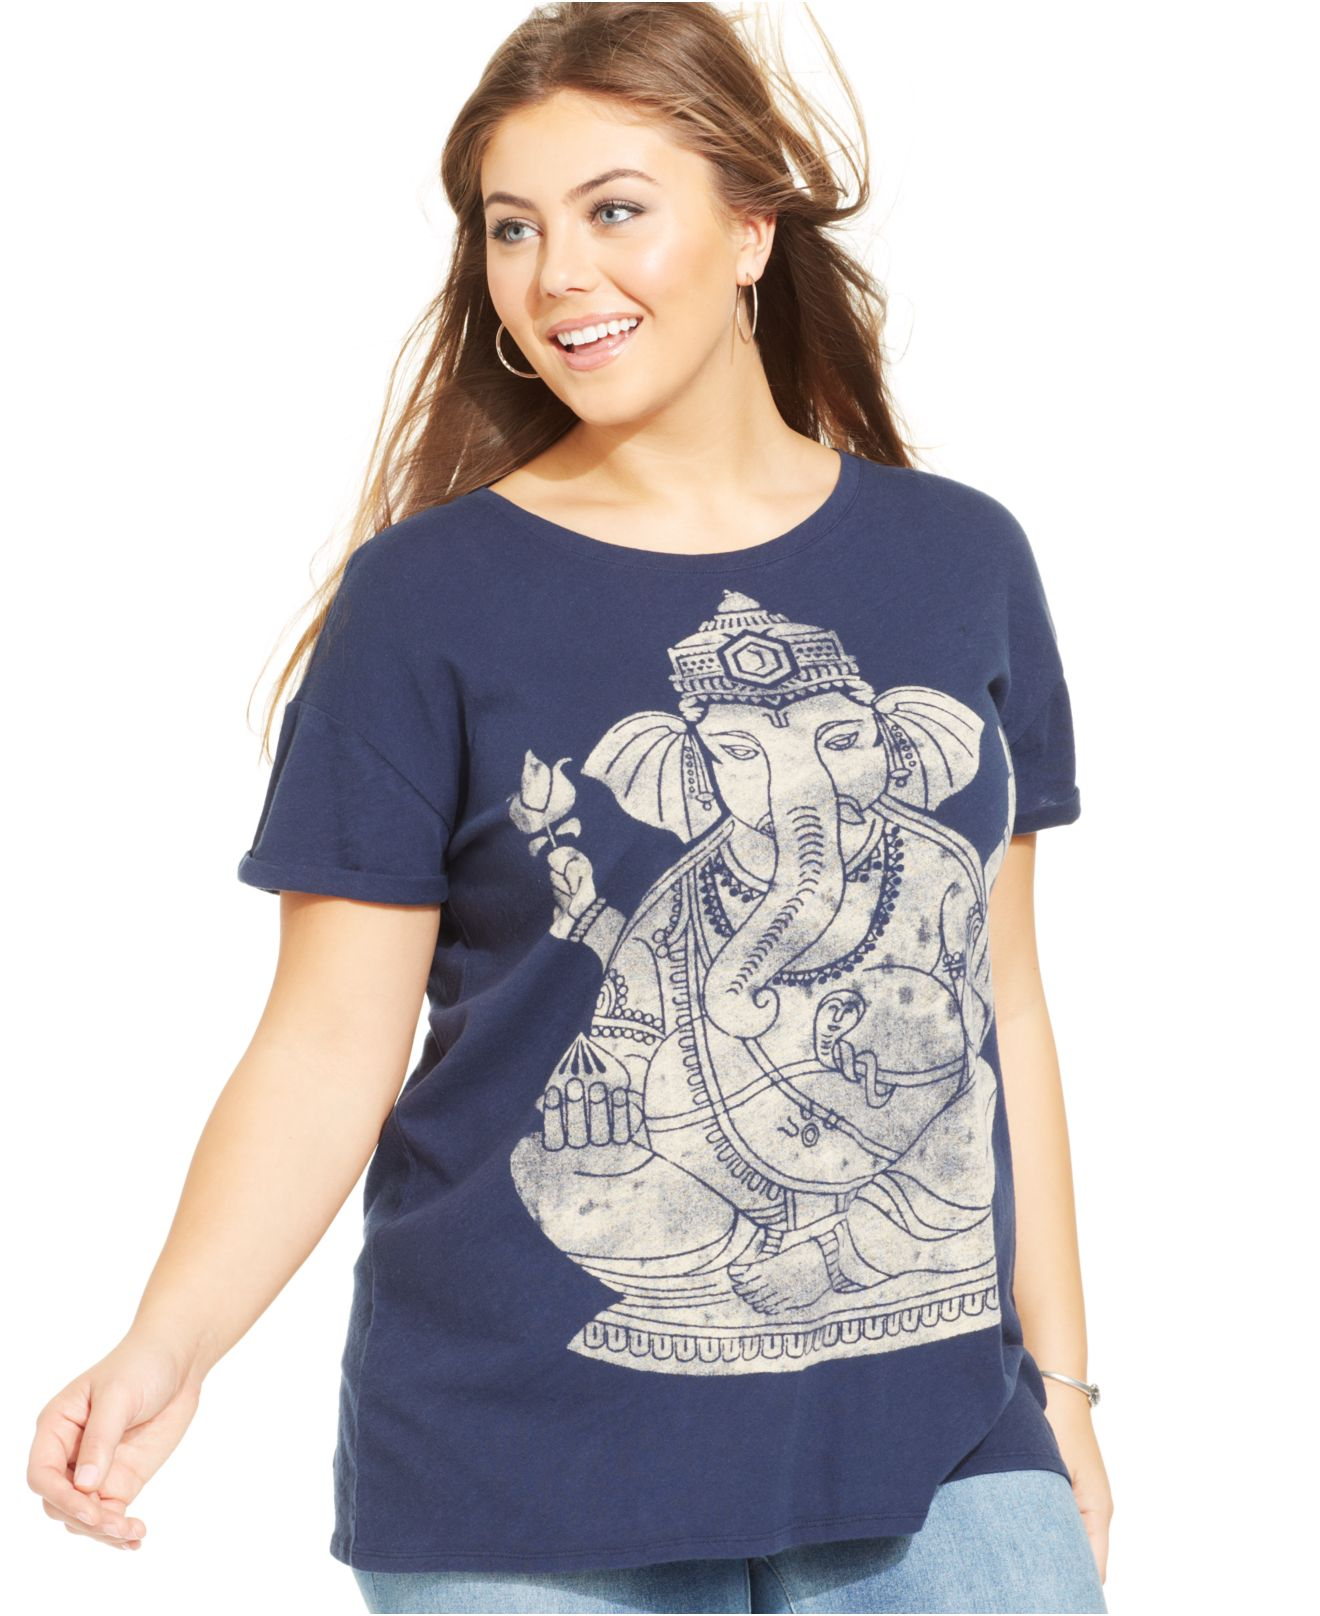 Lucky brand Lucky Brand Plus Size Short-Sleeve Graphic Tee in Blue ...